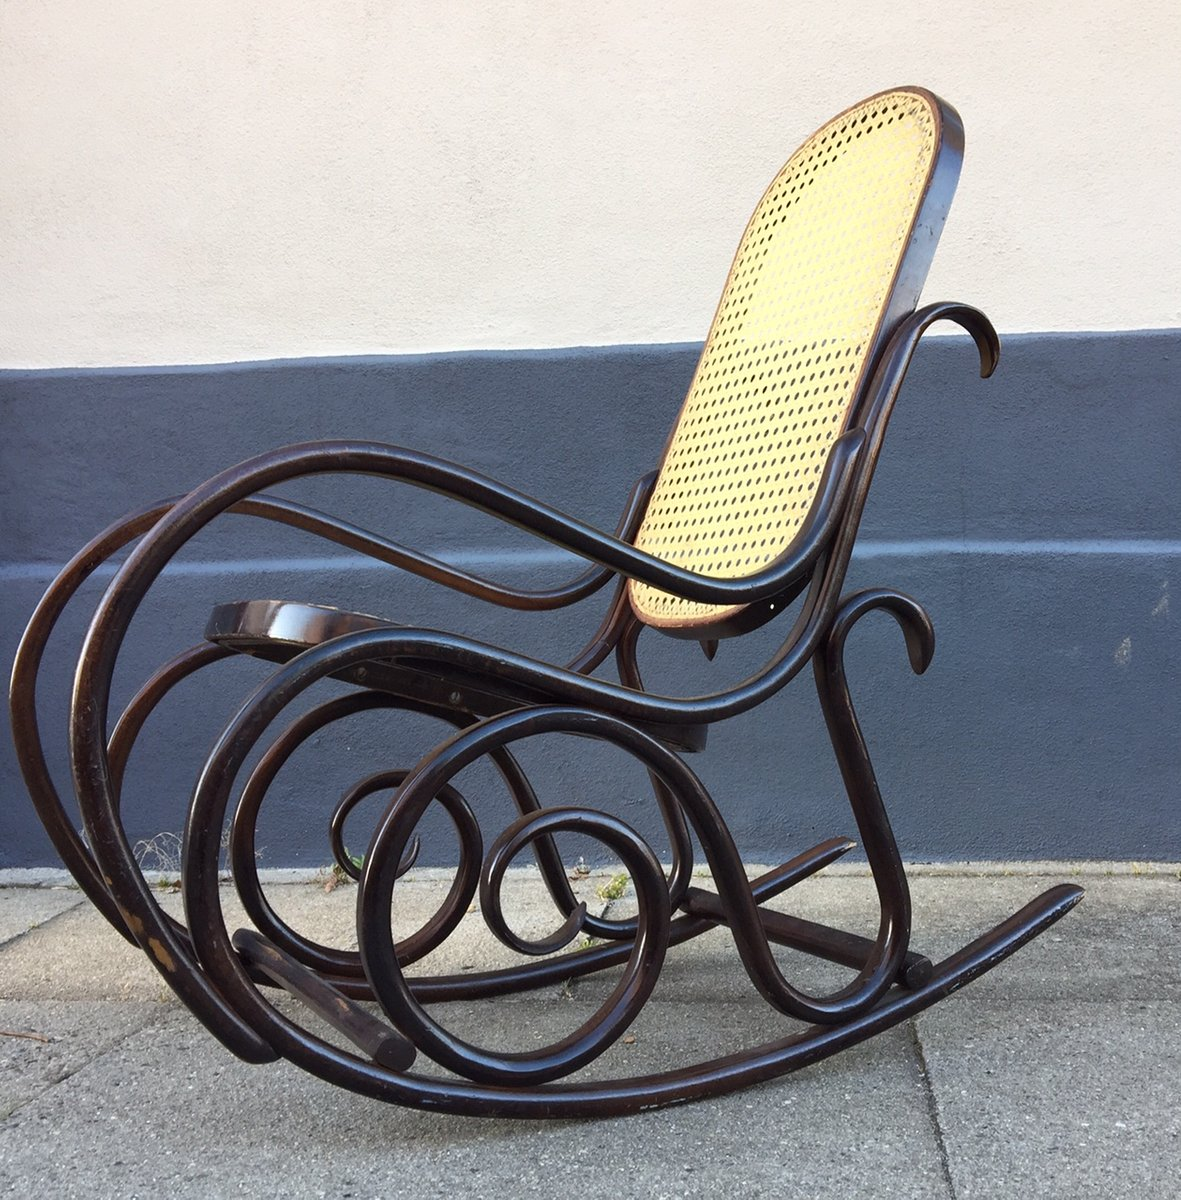 Vintage French Bentwood Junior Rocking Chair With Swirls, 1970s